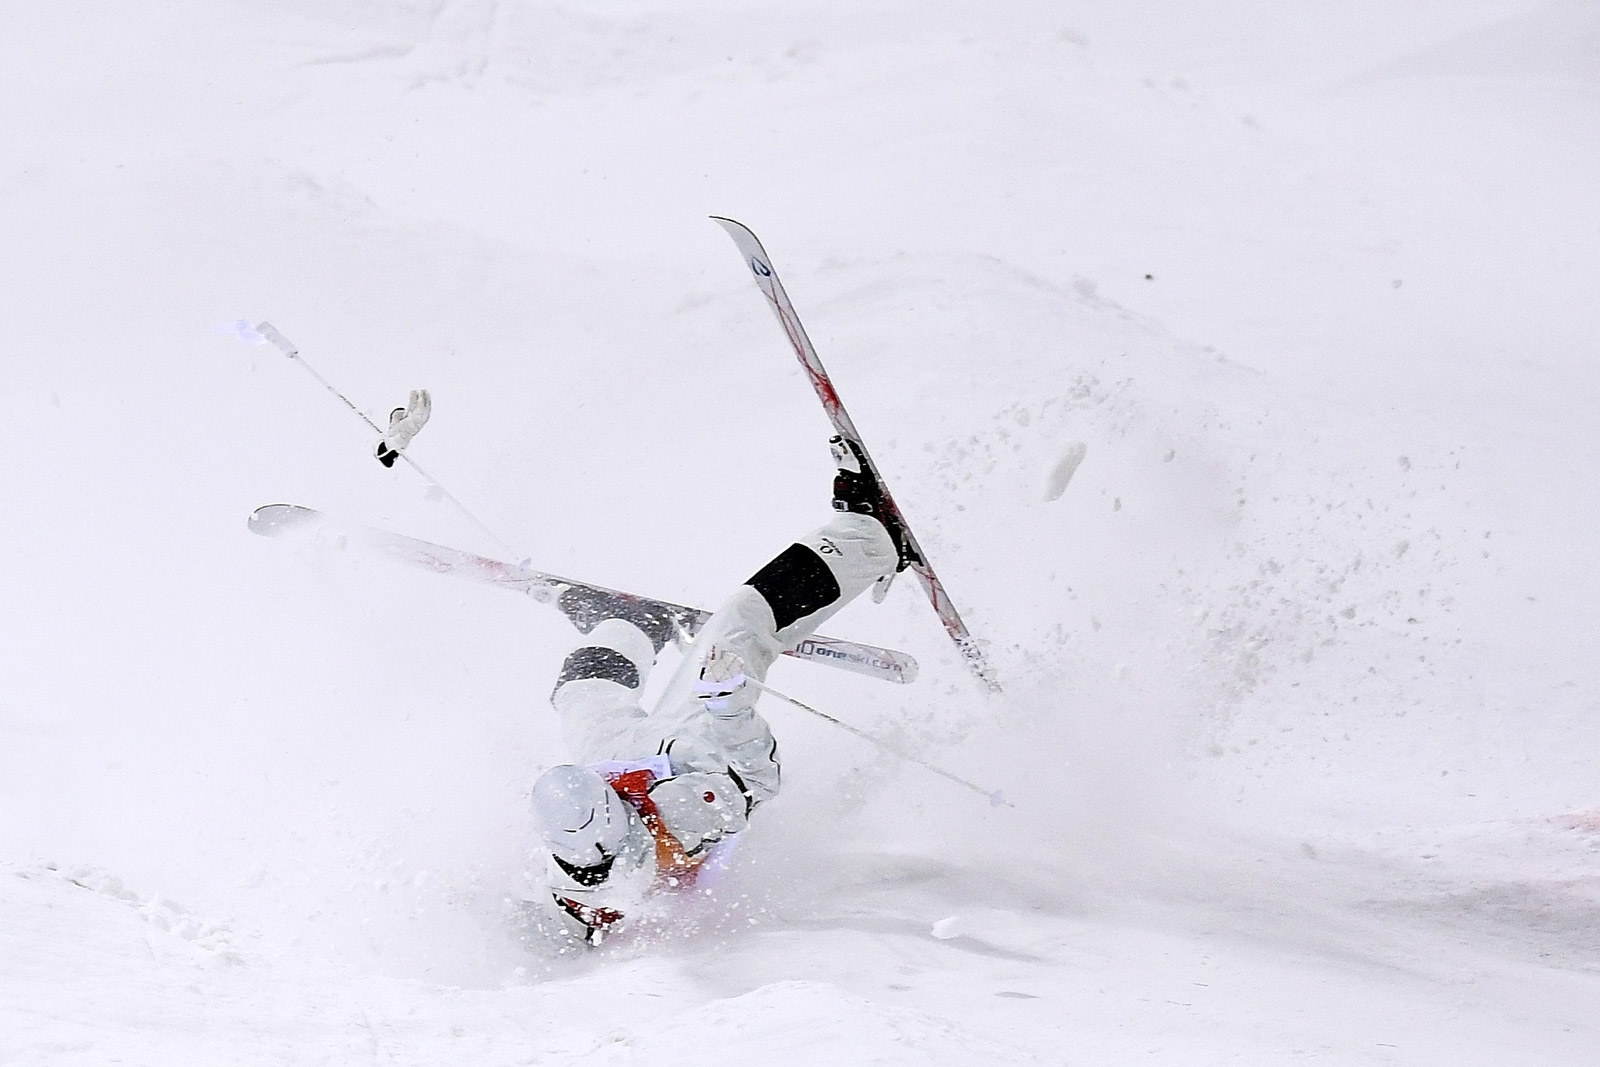 Japanese skier Ikuma Horishima crashes during the moguls event on February 12. David Ramos/Getty Images